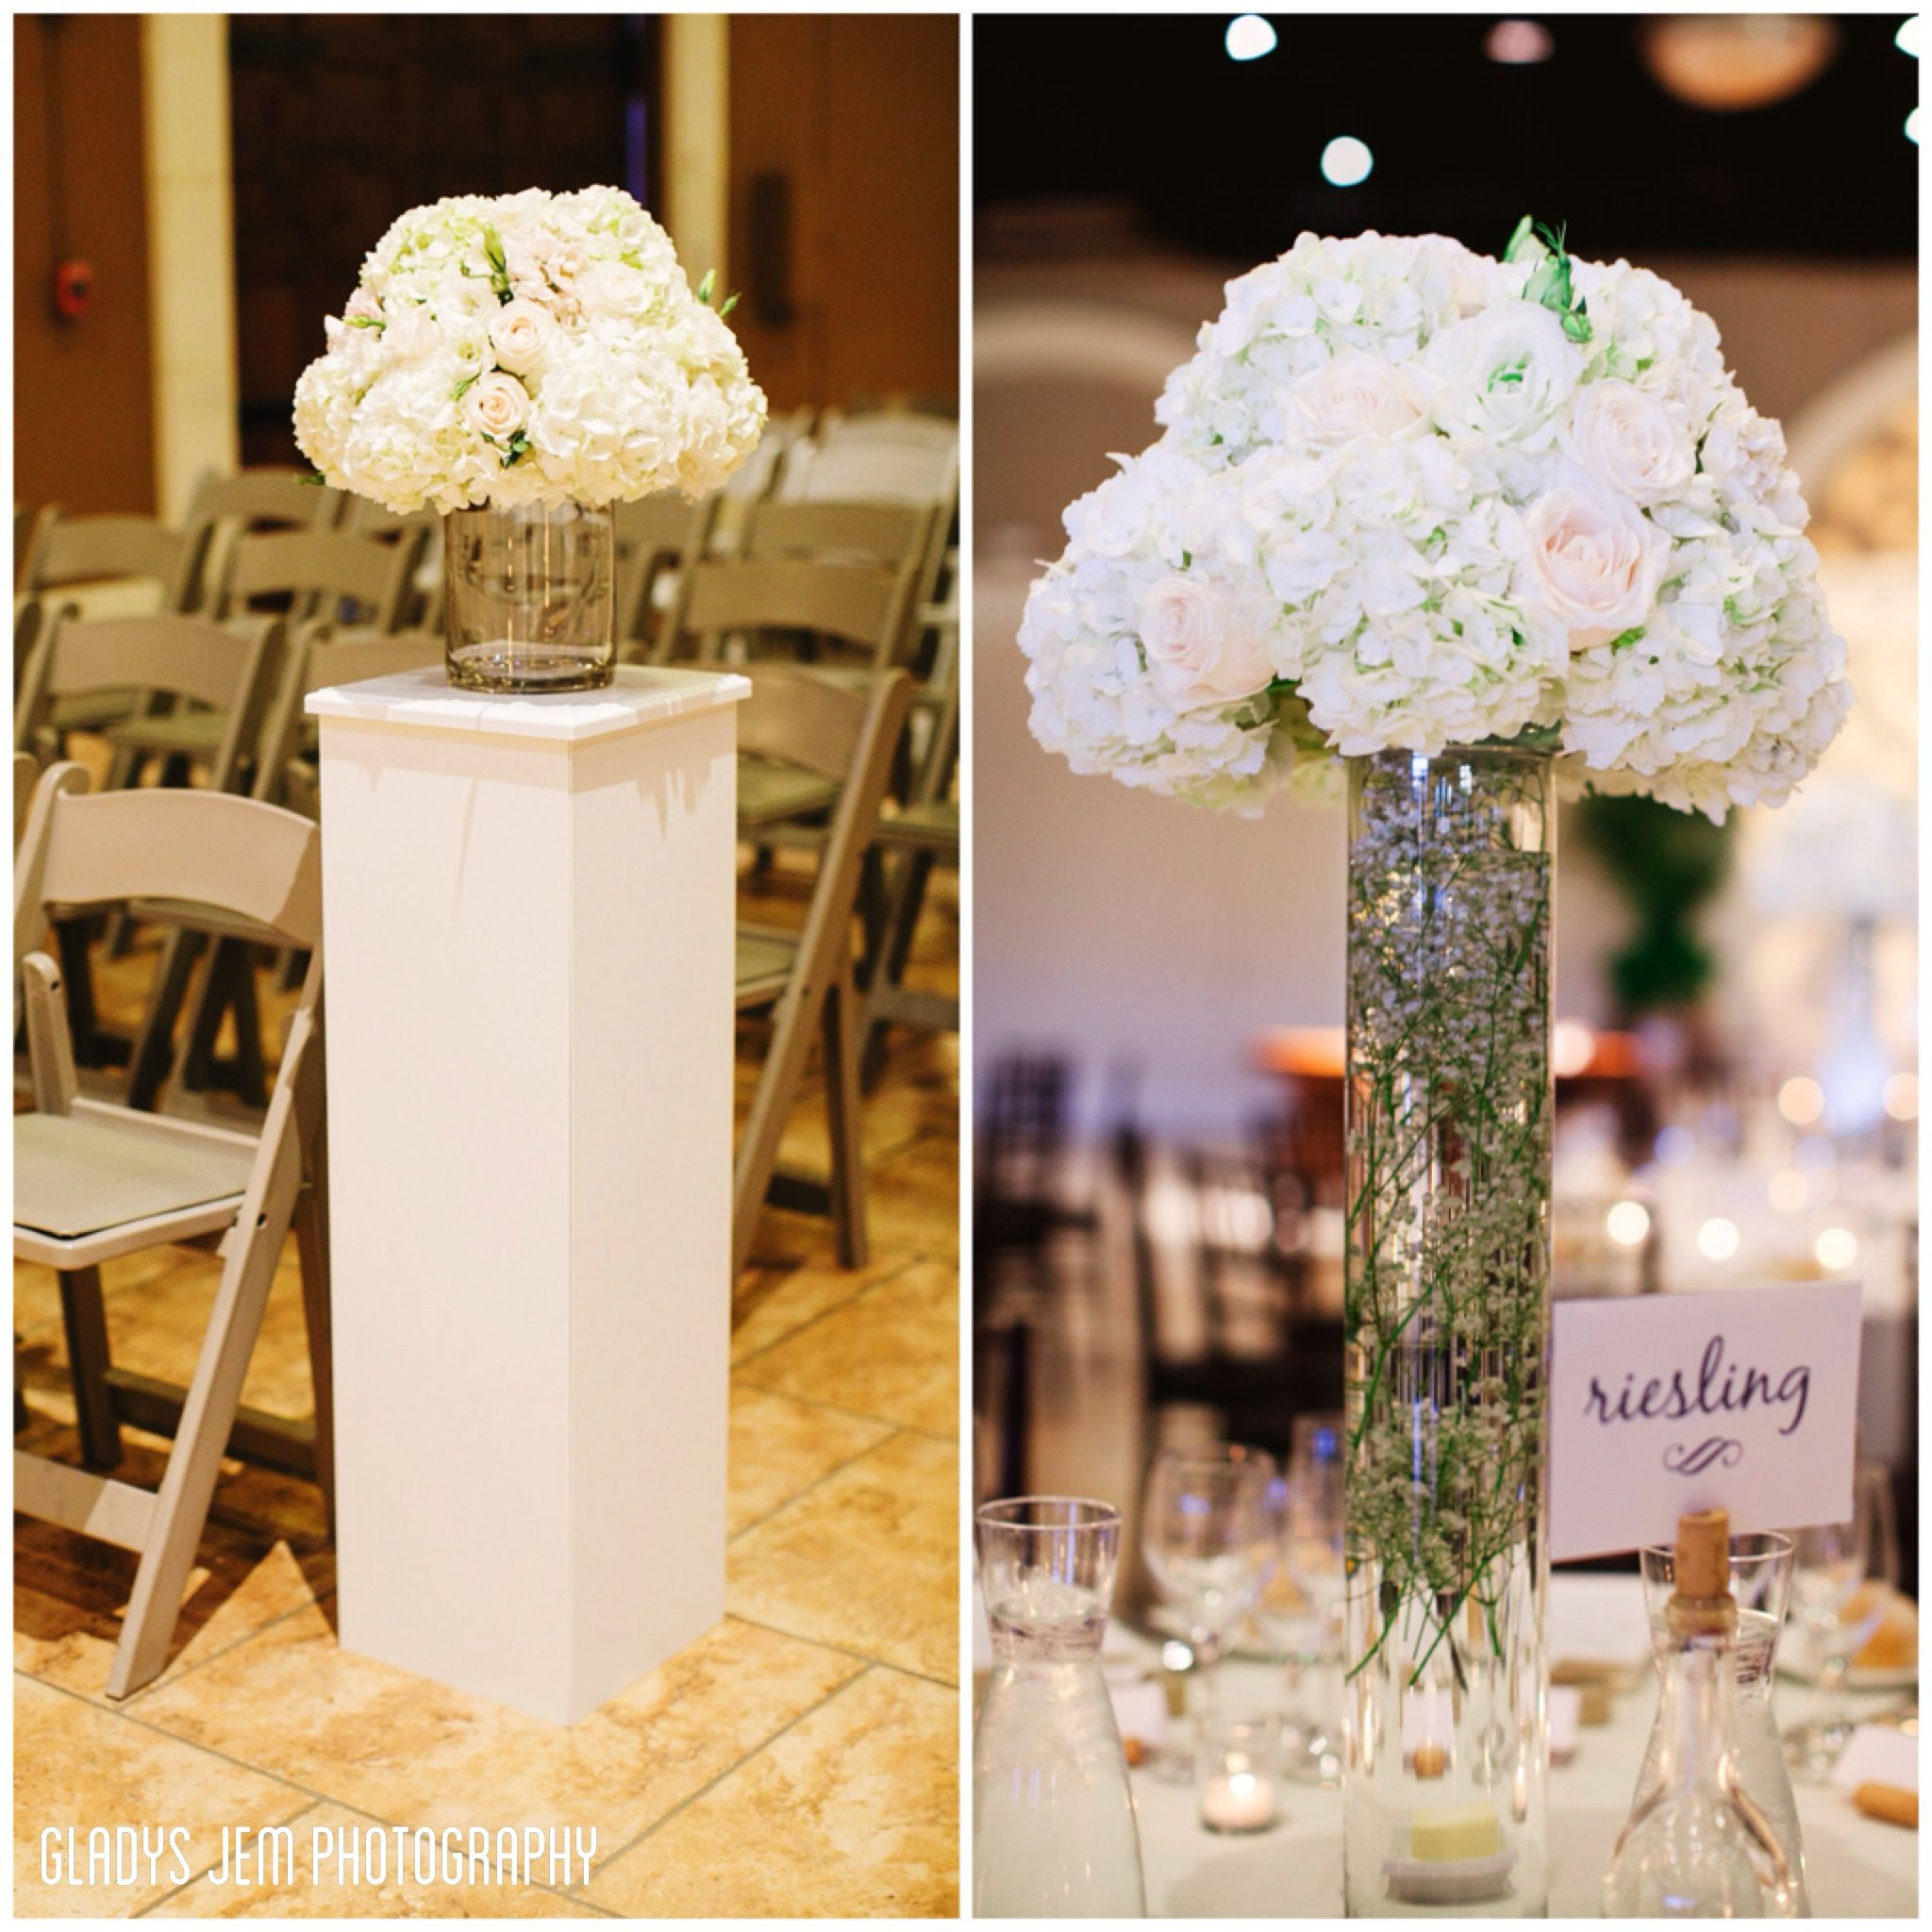 The Wedding Ceremony Wedding Flowers Cost Wedding Flowers Reception Centerpieces